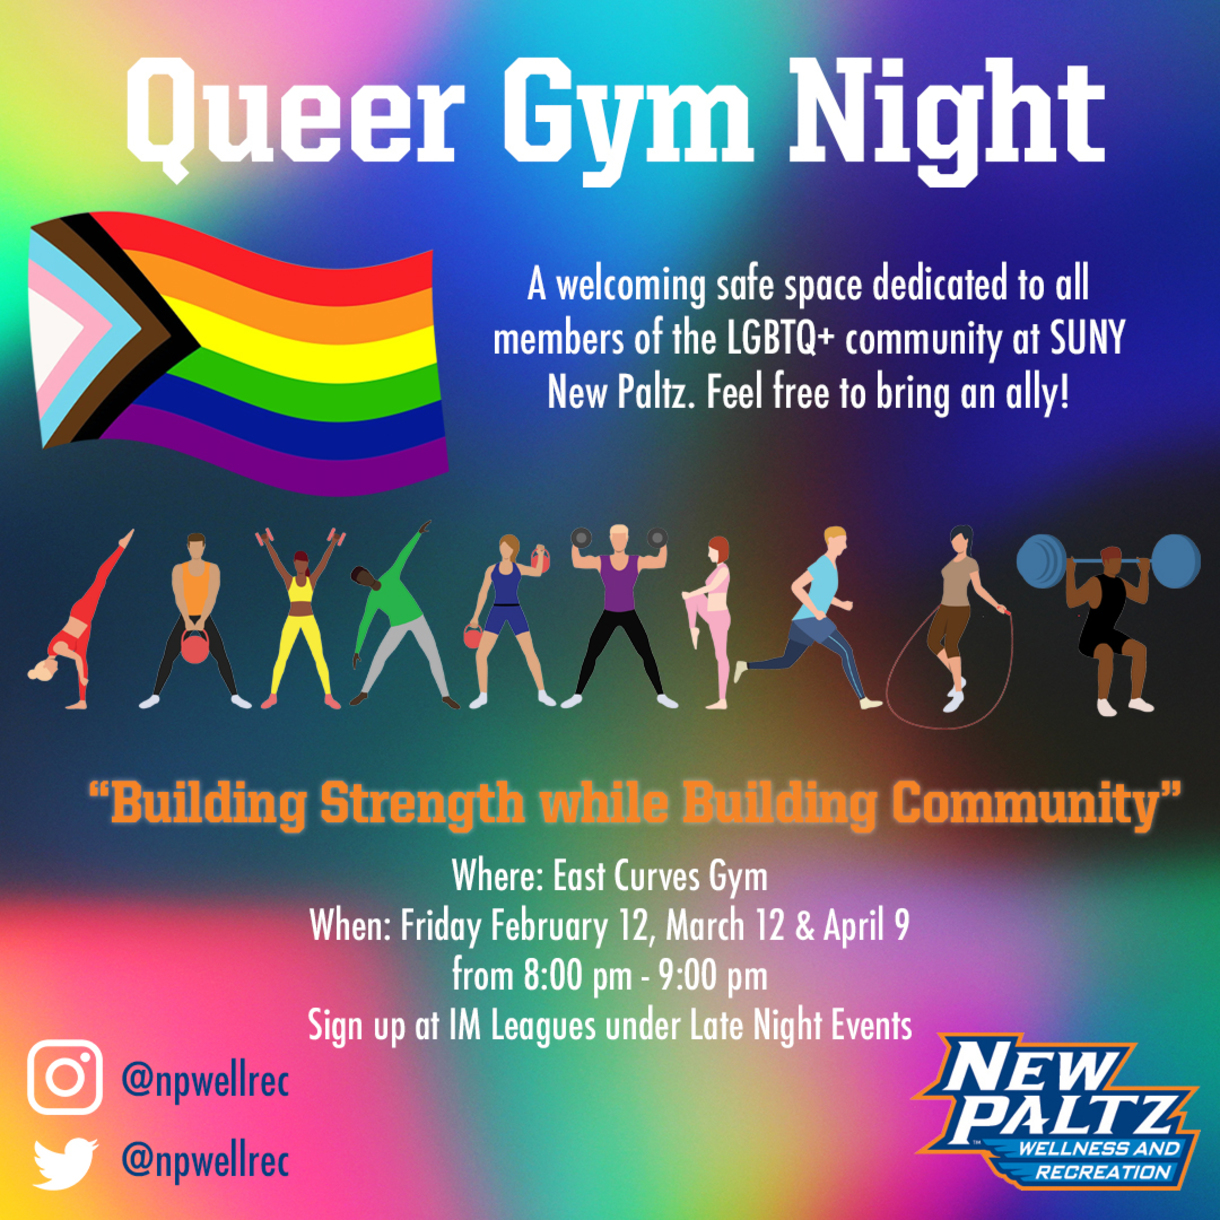 Queer Gym Night registration on IMLeagues